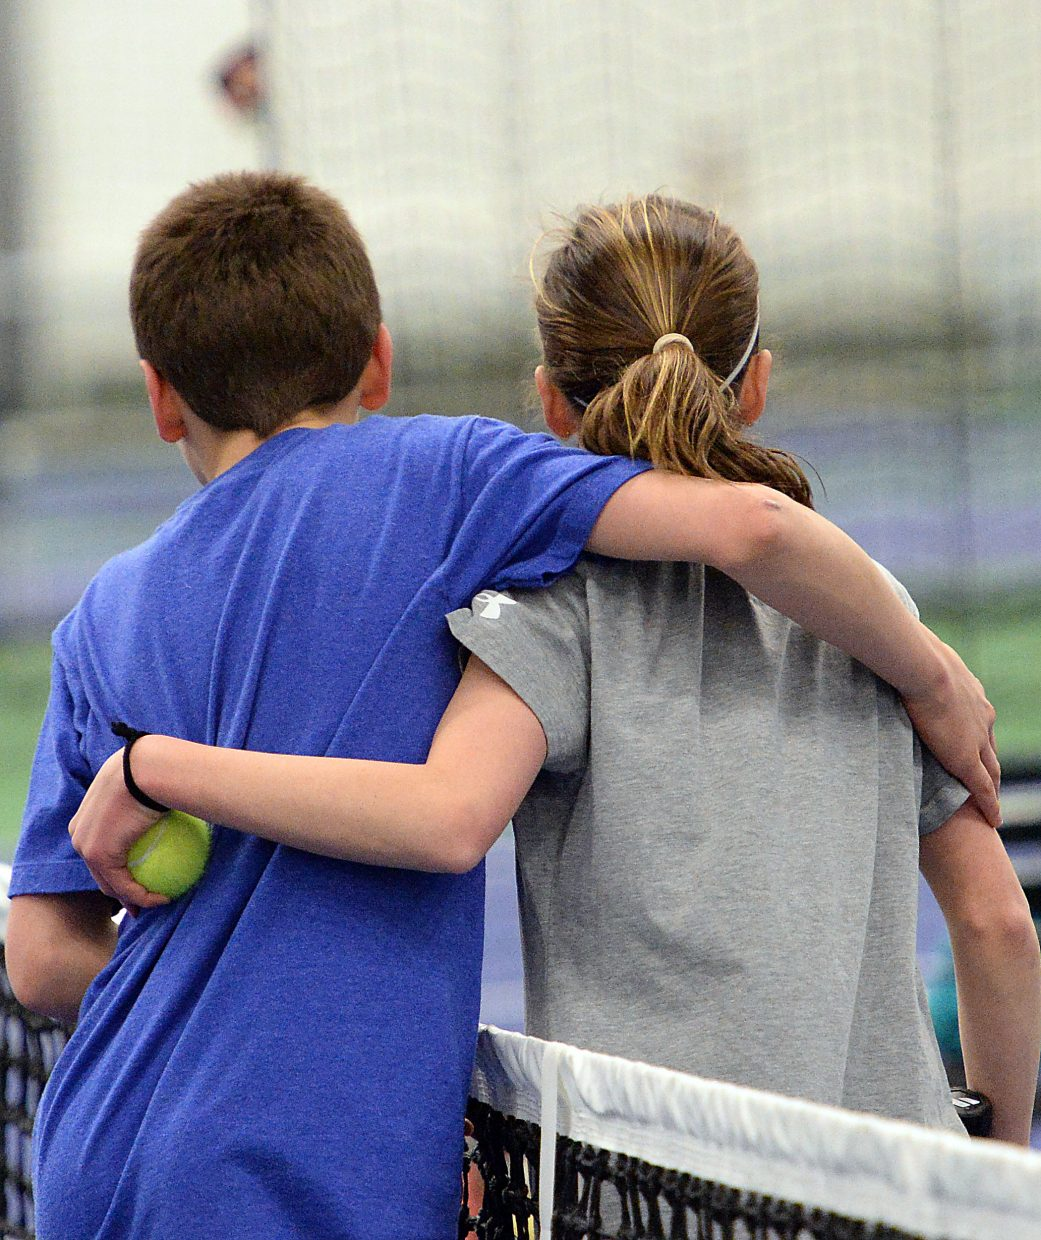 Teague and Tatum Burger hug Sunday after a tight match in Steamboat Springs.